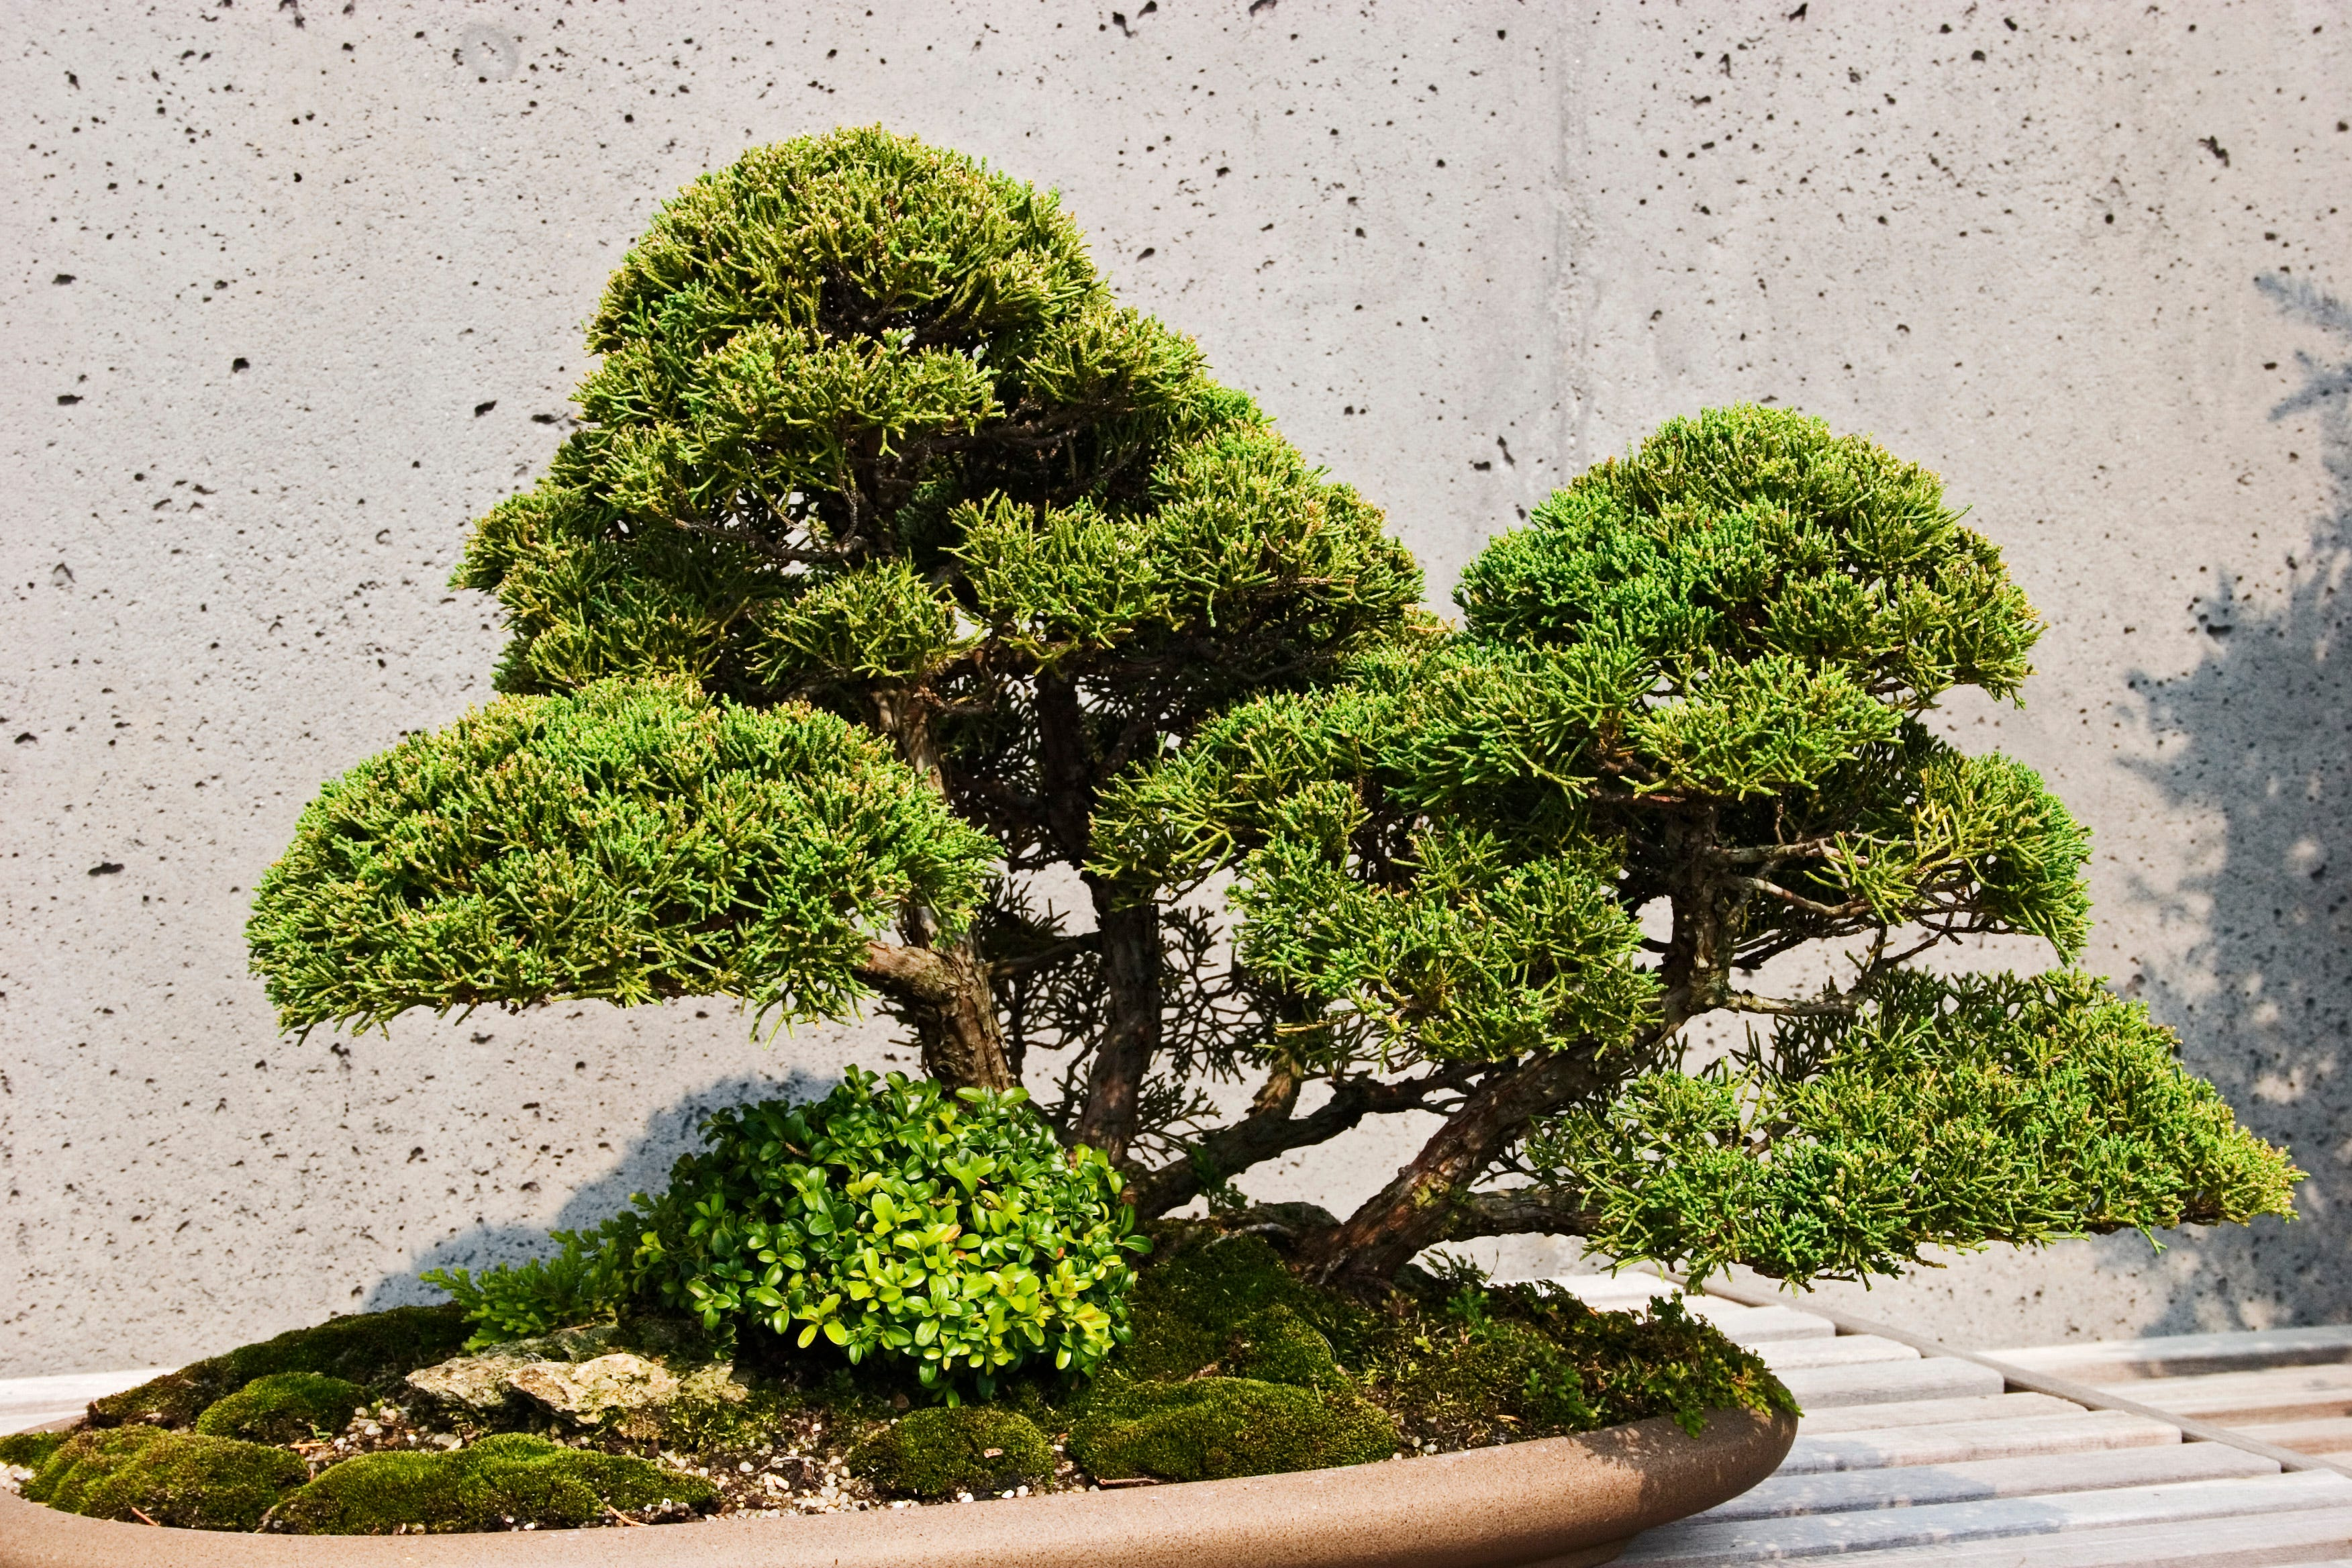 4adc68d8-b272-4fc5-bbb0-9721b56e8a36-Bonsai Japanese couple to bonsai thieves: Please water 400-year-old plant worth over $50,000